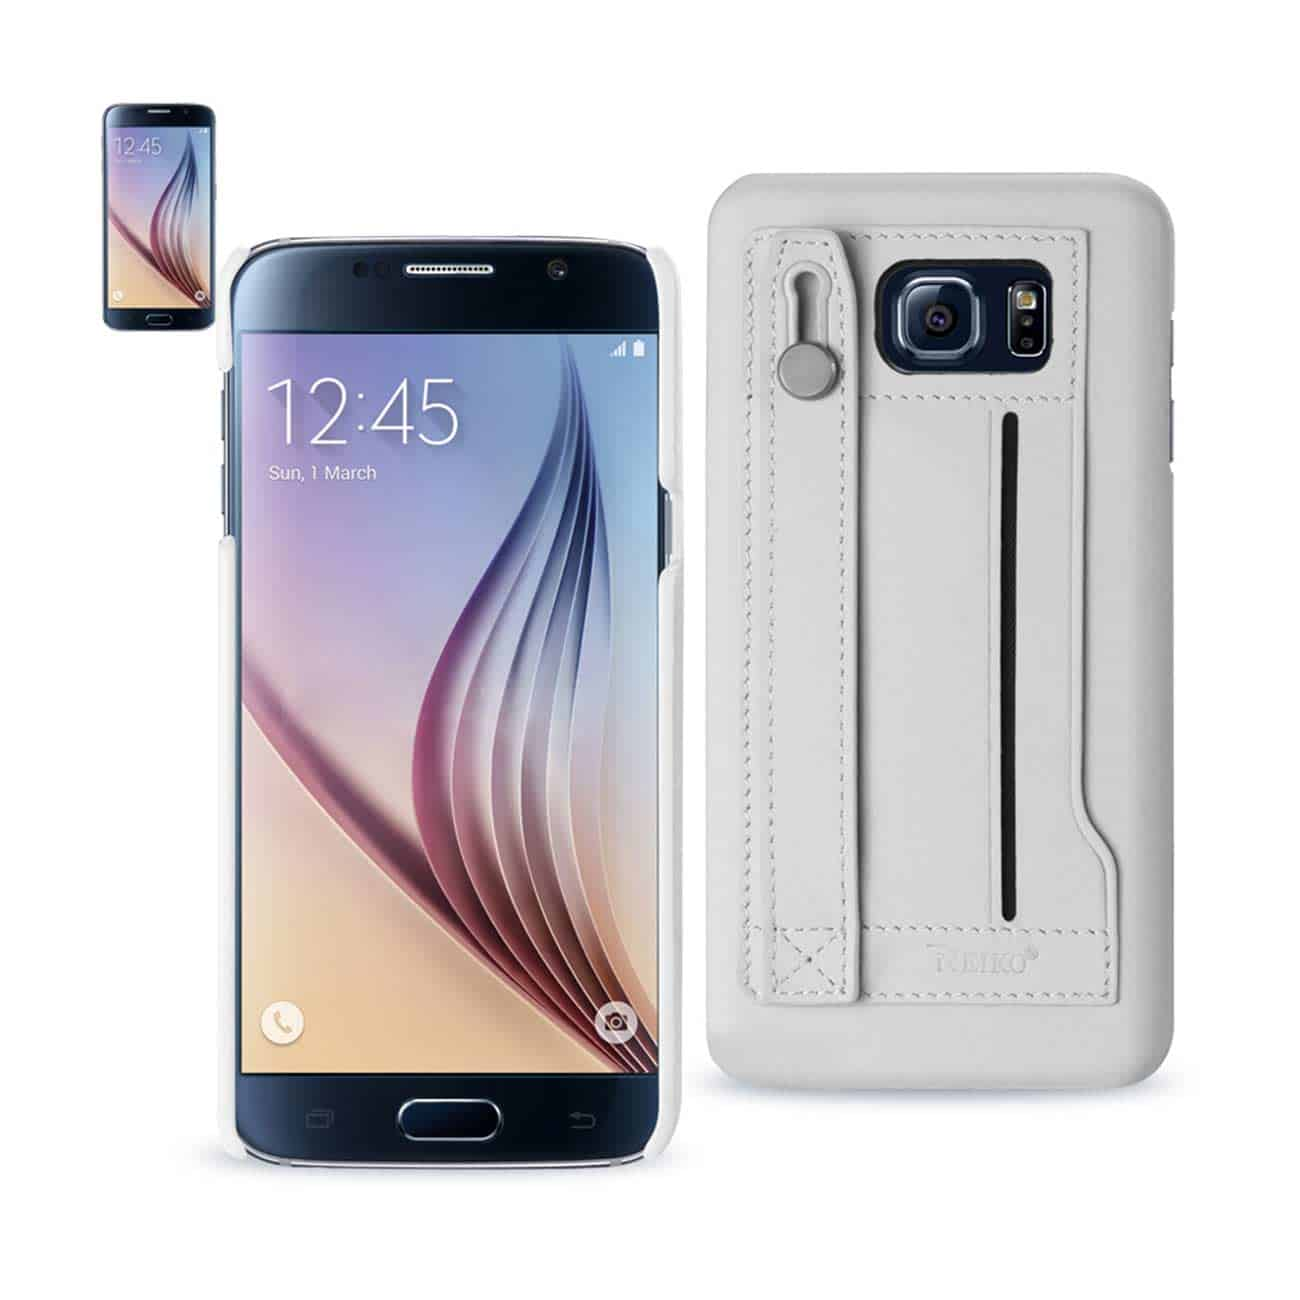 SAMSUNG GALAXY S6 GENUINE LEATHER HAND STRAP CASE IN IVORY